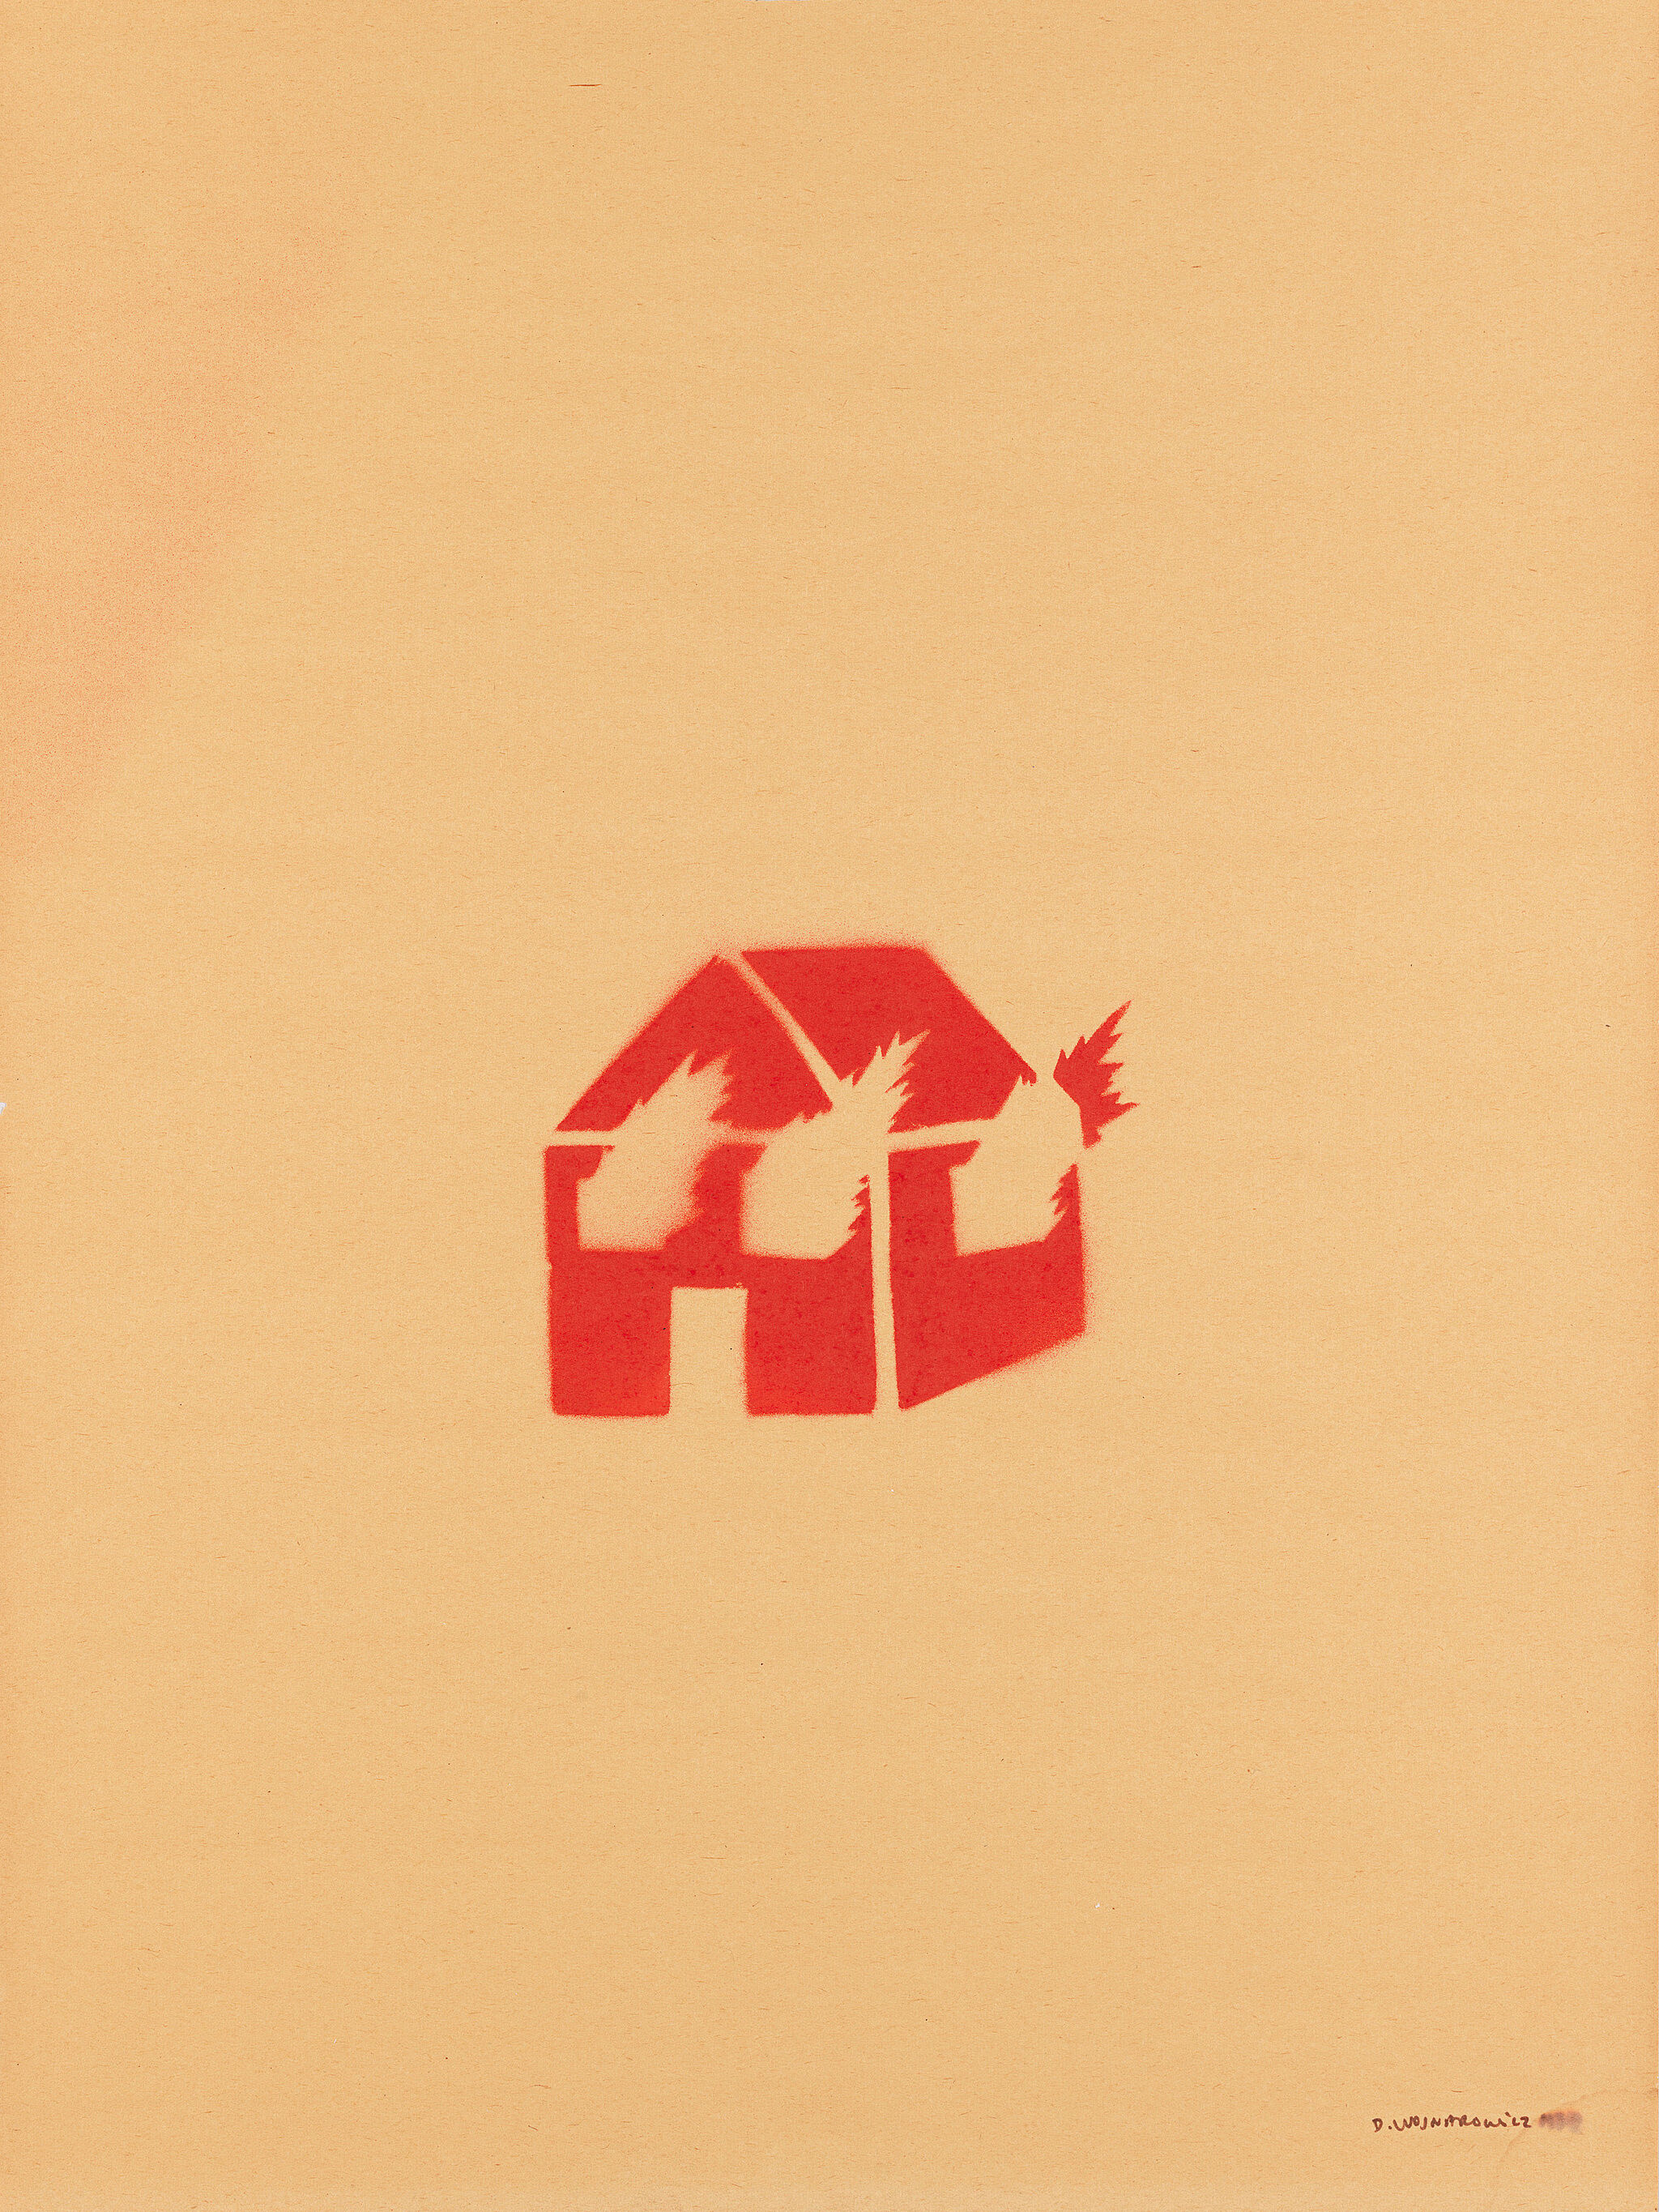 Stencil of a burning house.